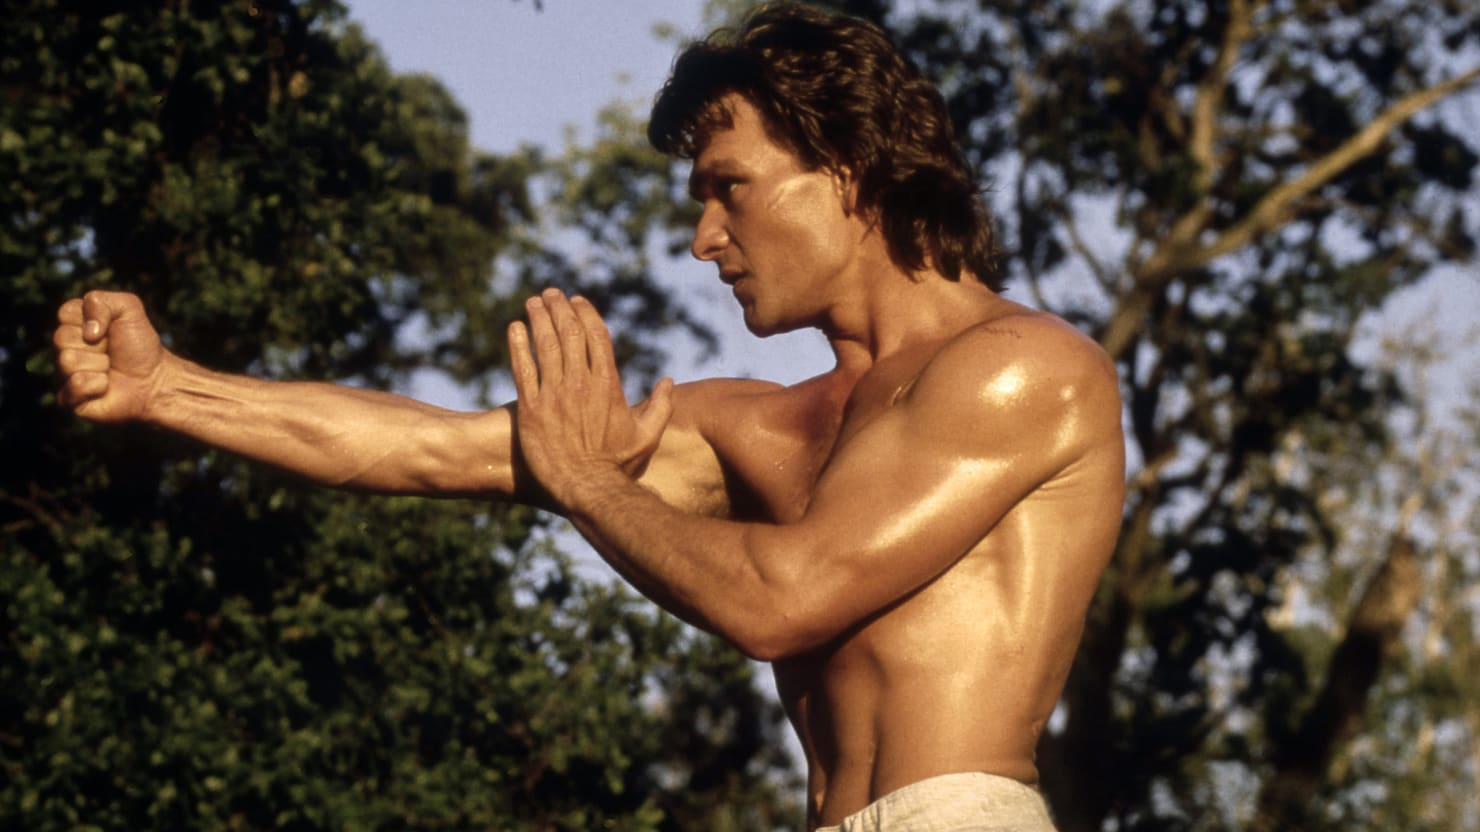 Patrick Swayze Never Wanted to Be a 'Sex Symbol'